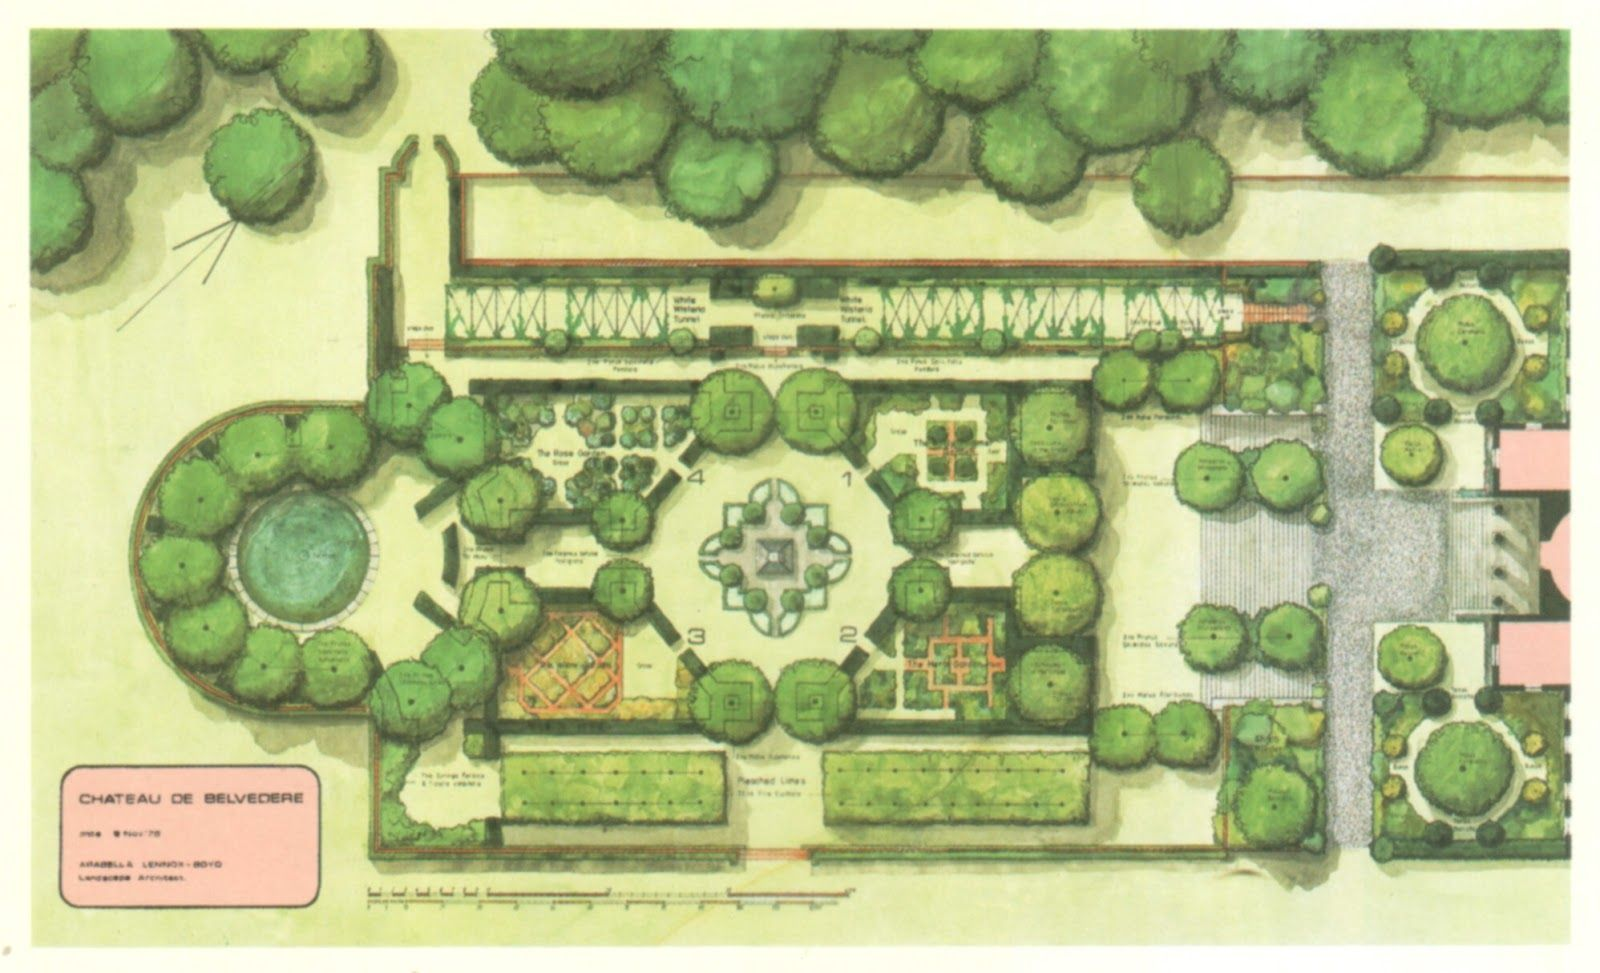 By The End Of The 18th Century The English Garden Was Being